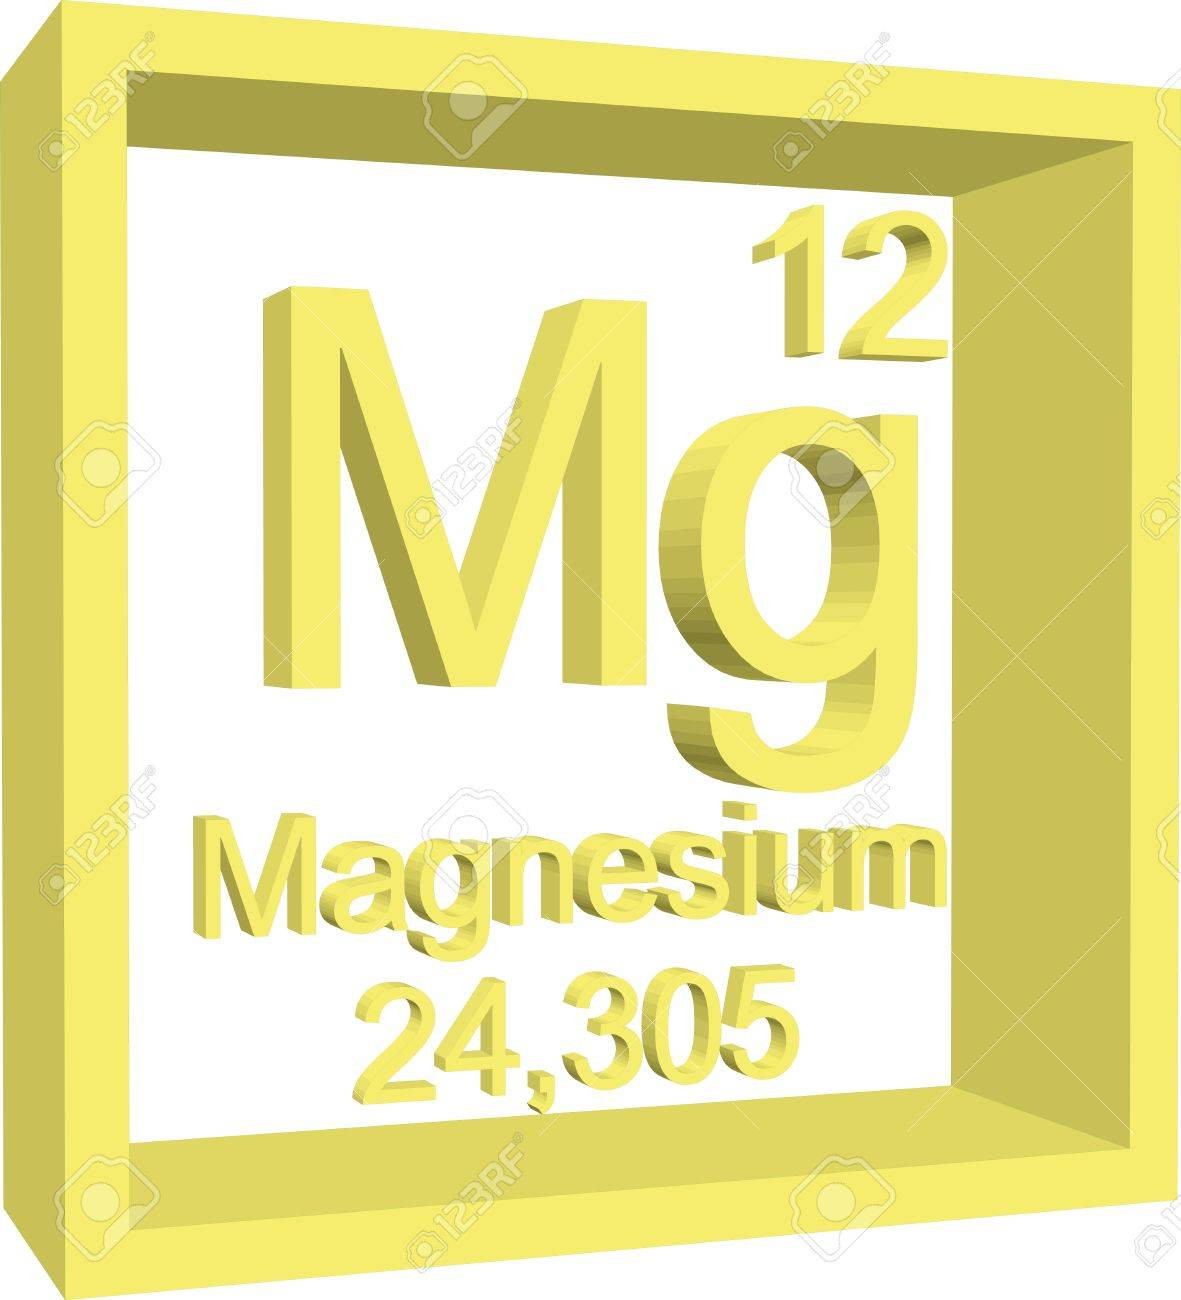 Periodic table of elements magnesium royalty free cliparts periodic table of elements magnesium stock vector 57971886 urtaz Images